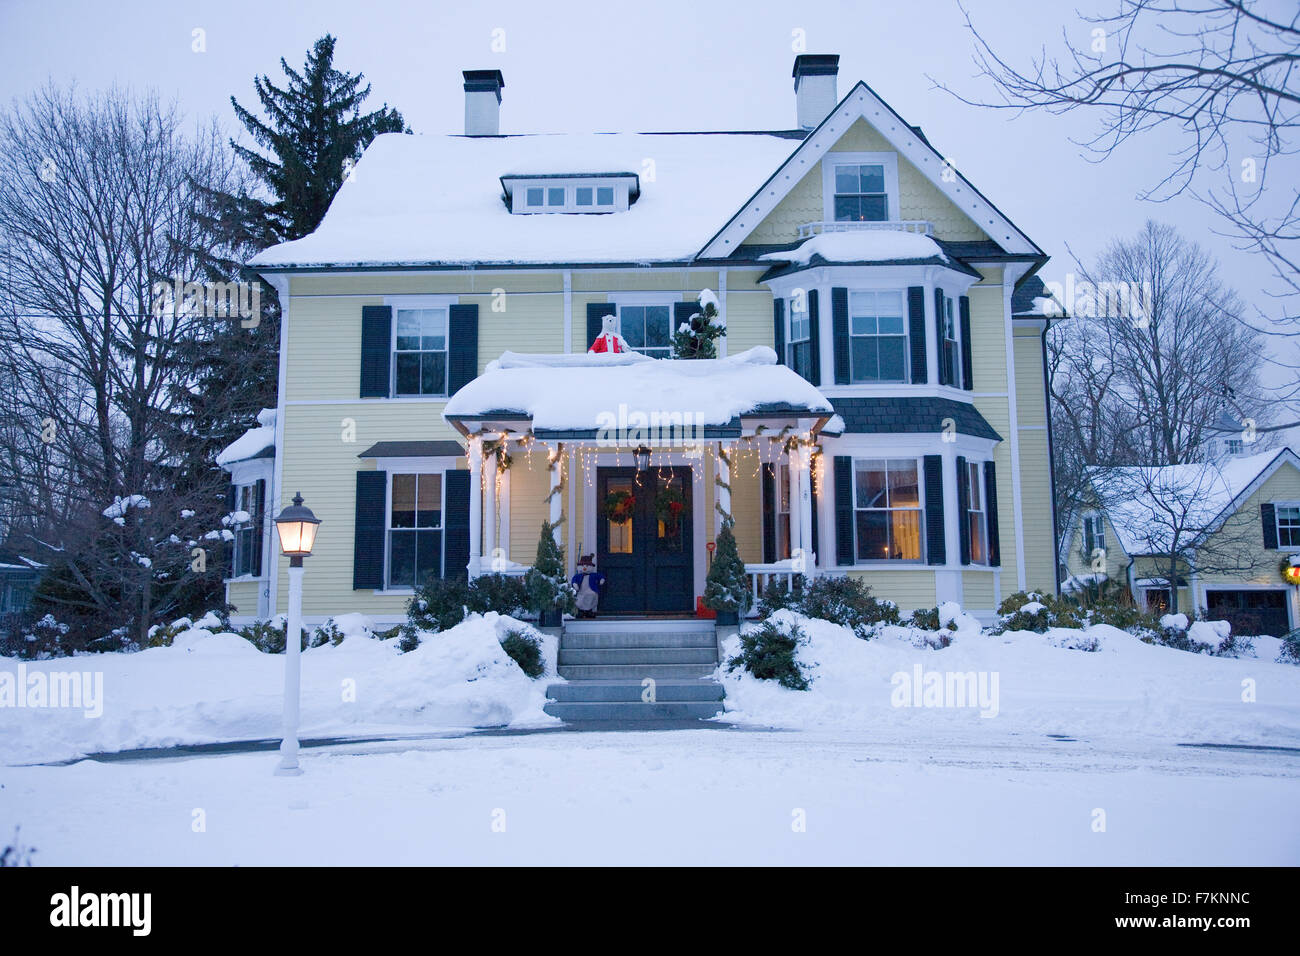 House with Christmas lights on in snow at dusk, Stow, MA ...